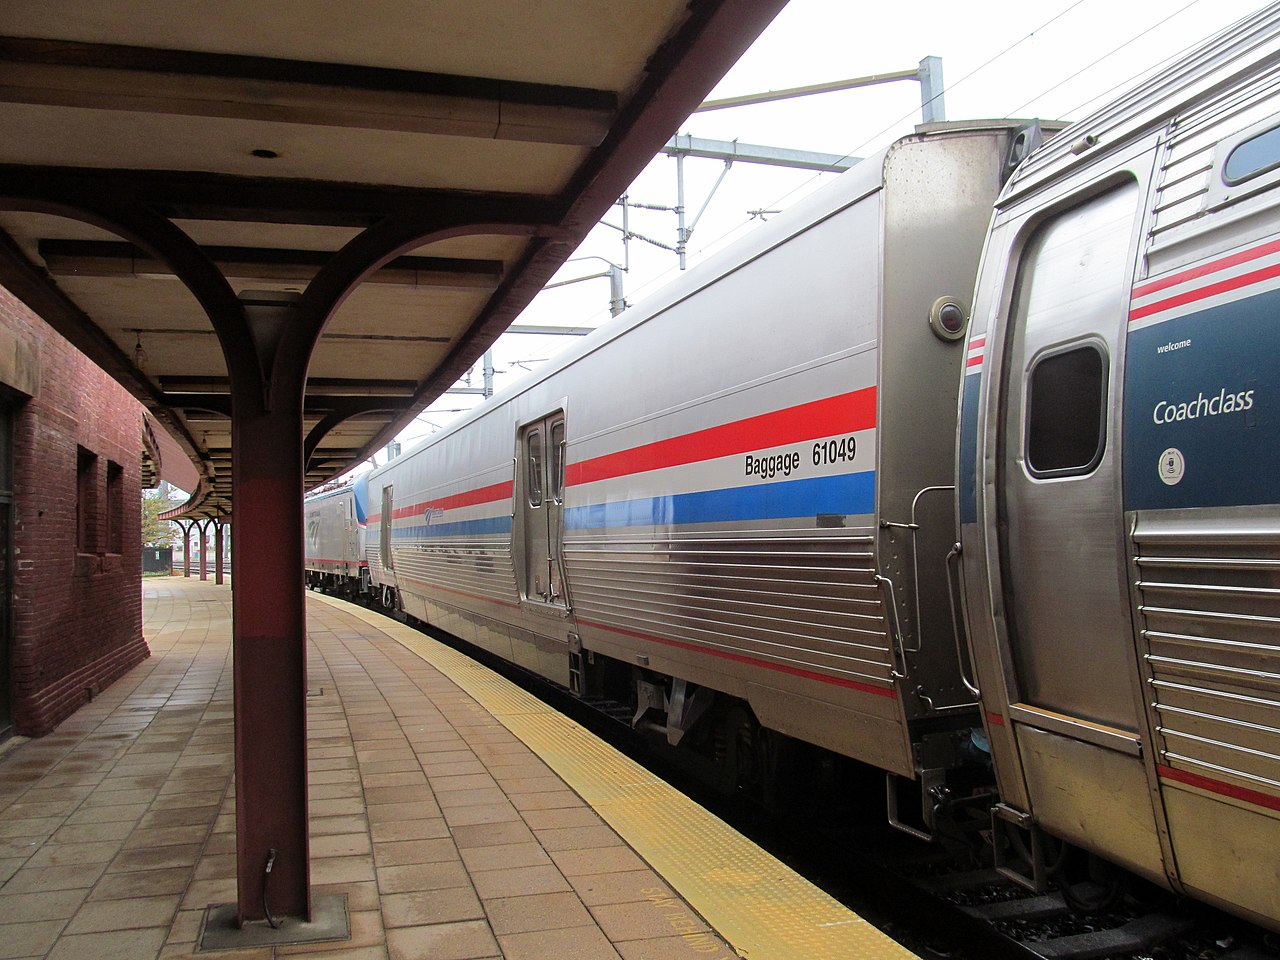 File Viewliner 61049 On Amtrak Train 66 At New London